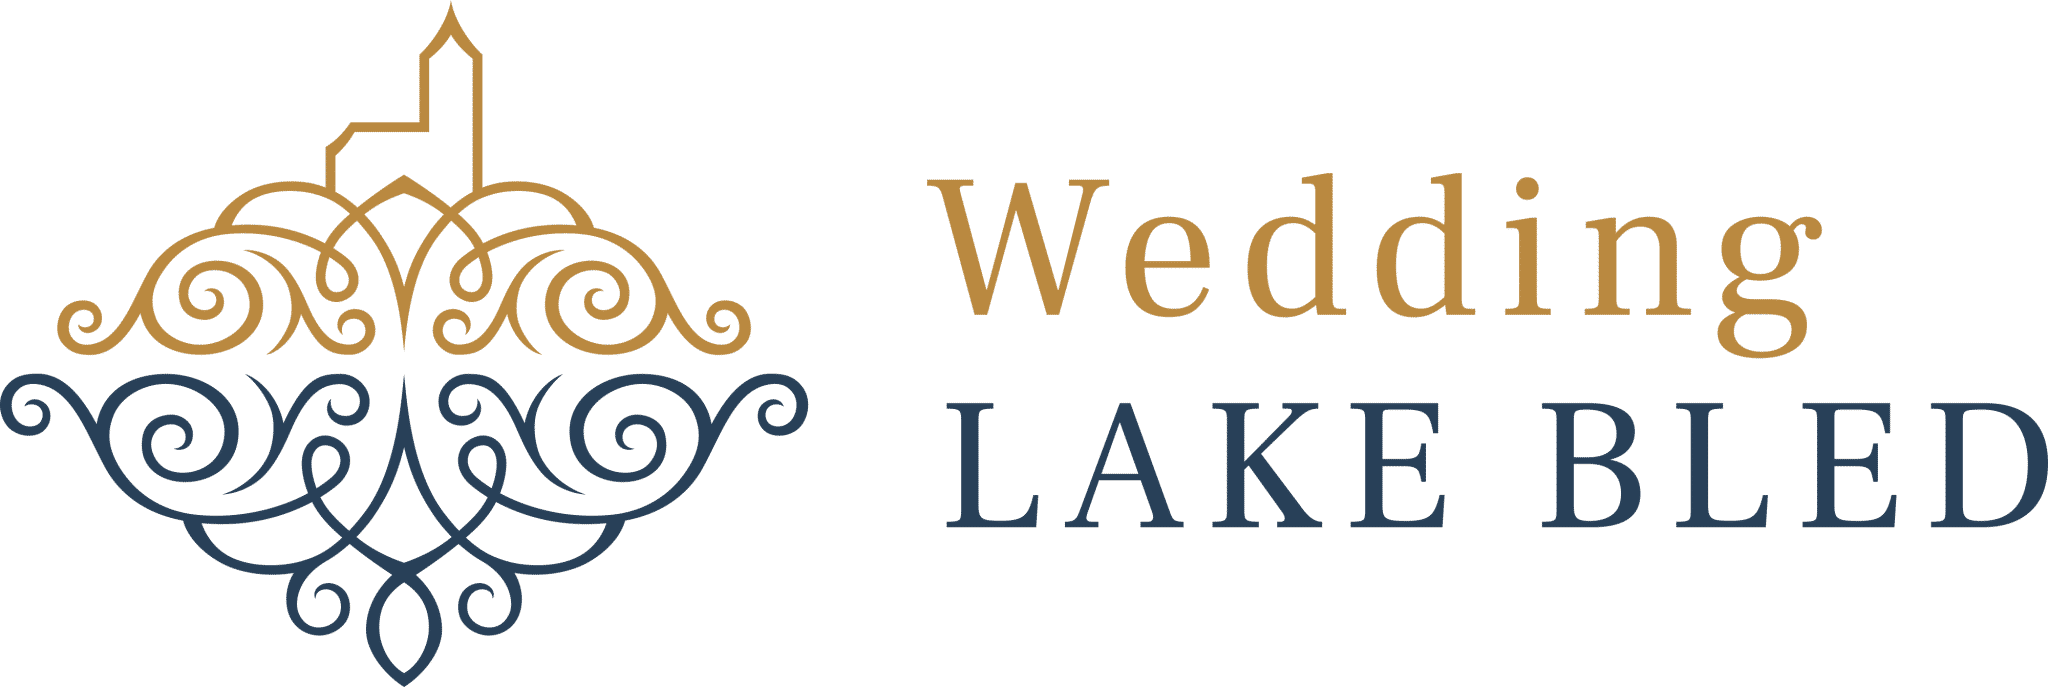 Lake Bled Wedding Logo